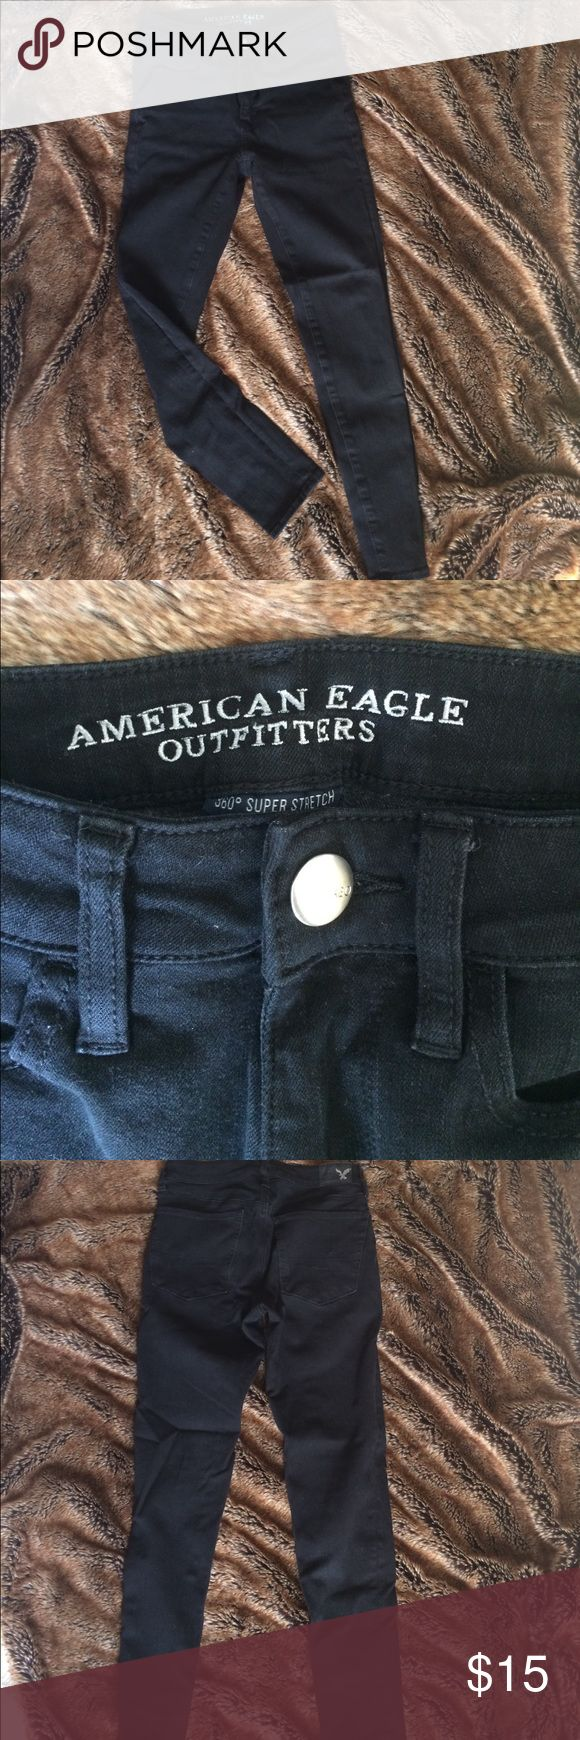 American Eagle Black Jeggings 360° super stretch jeggings. High rise and short cut. These jeggings are versatile and comfortable. In great condition! American Eagle Outfitters Jeans Skinny